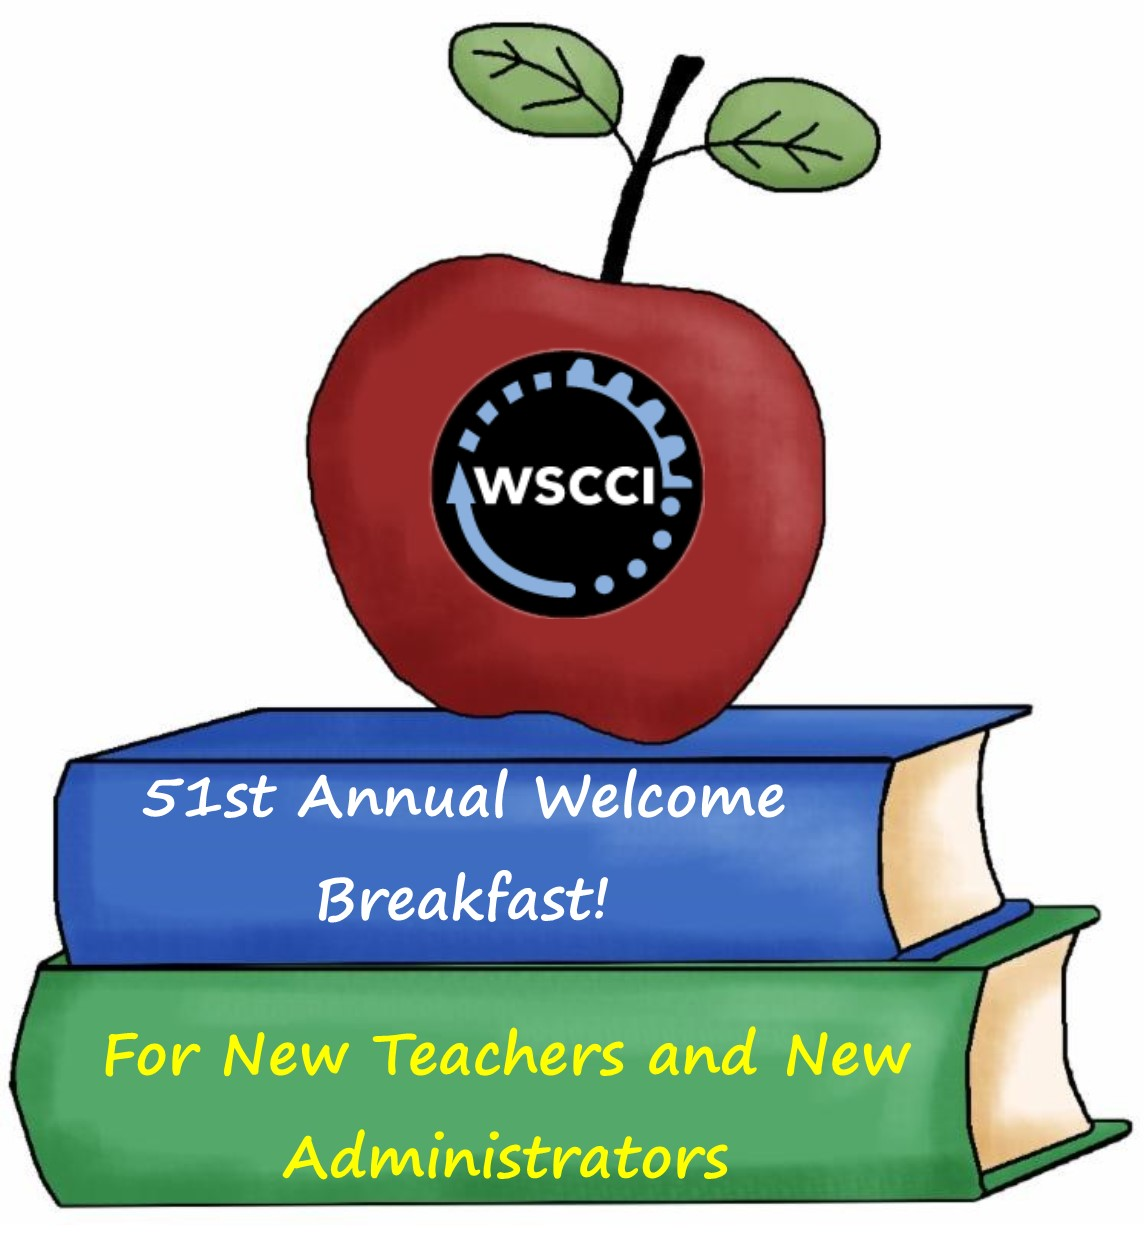 revised_teachers_breakfast_logo(1).jpg